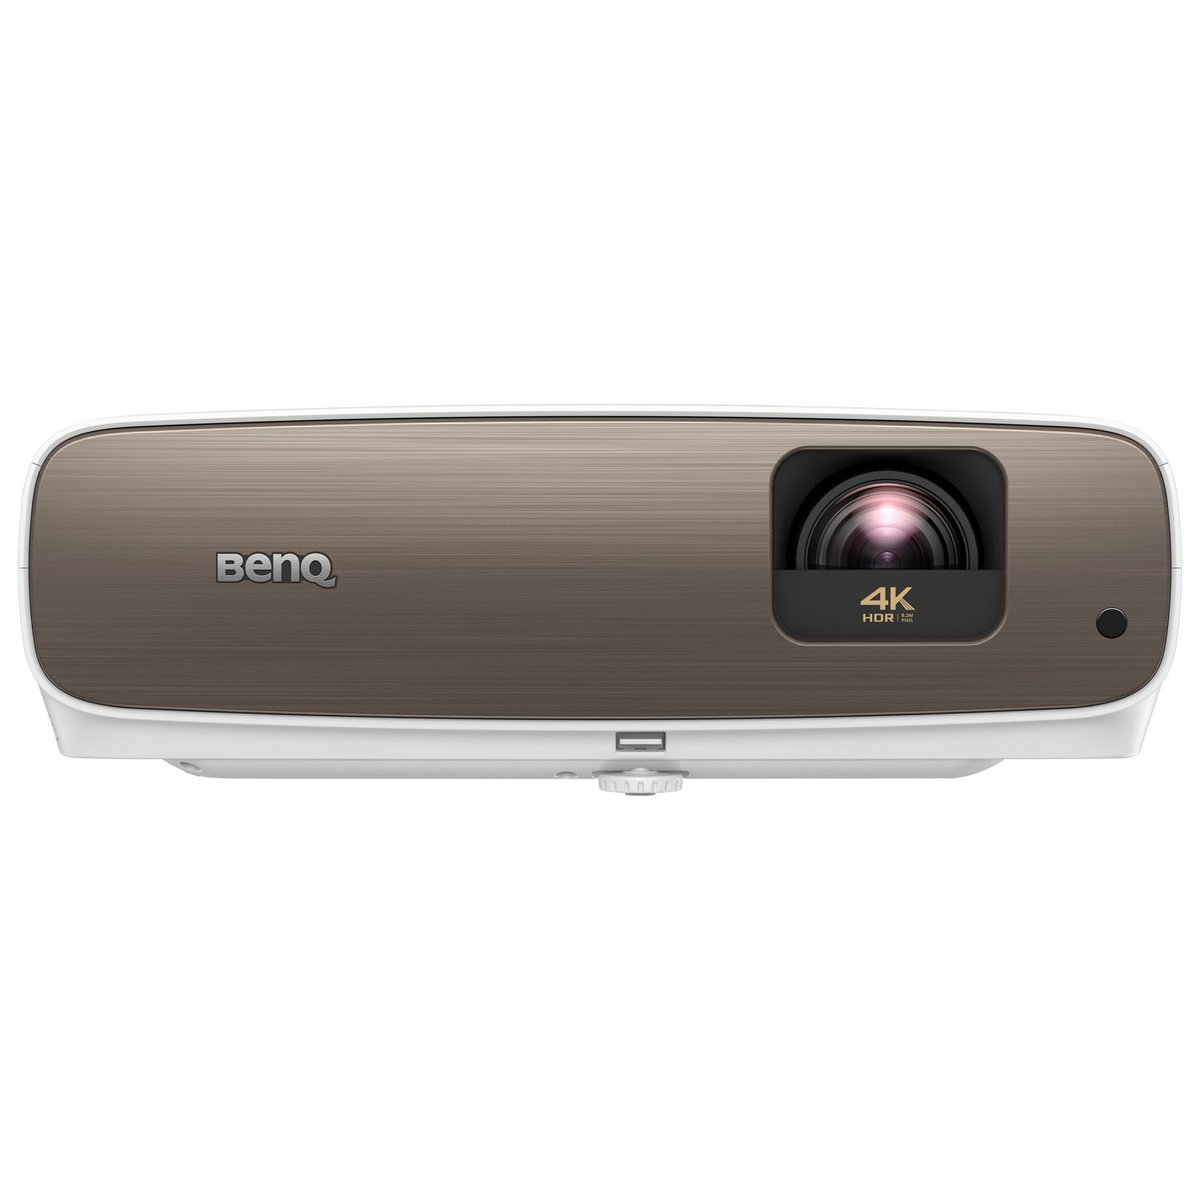 #Preorder the NEW @BenQAmerica #4K CinePrime HT3550 projector exclusively at Best Buy now! http://ow.ly/pN1v30nZsC9